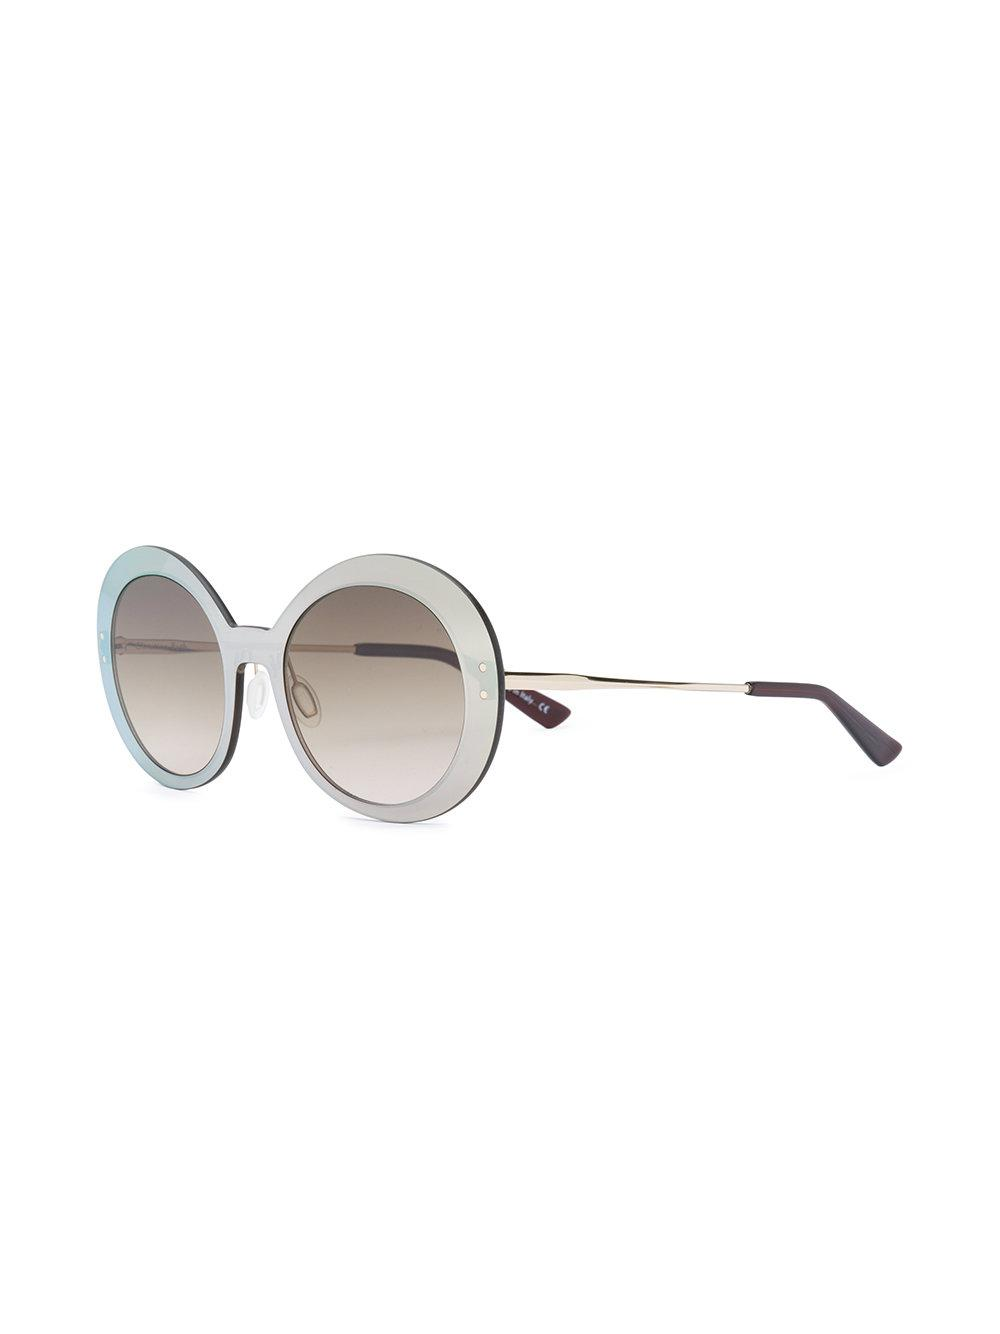 38fc39f698 Christian Roth Round Frames Sunglasses in Brown - Lyst